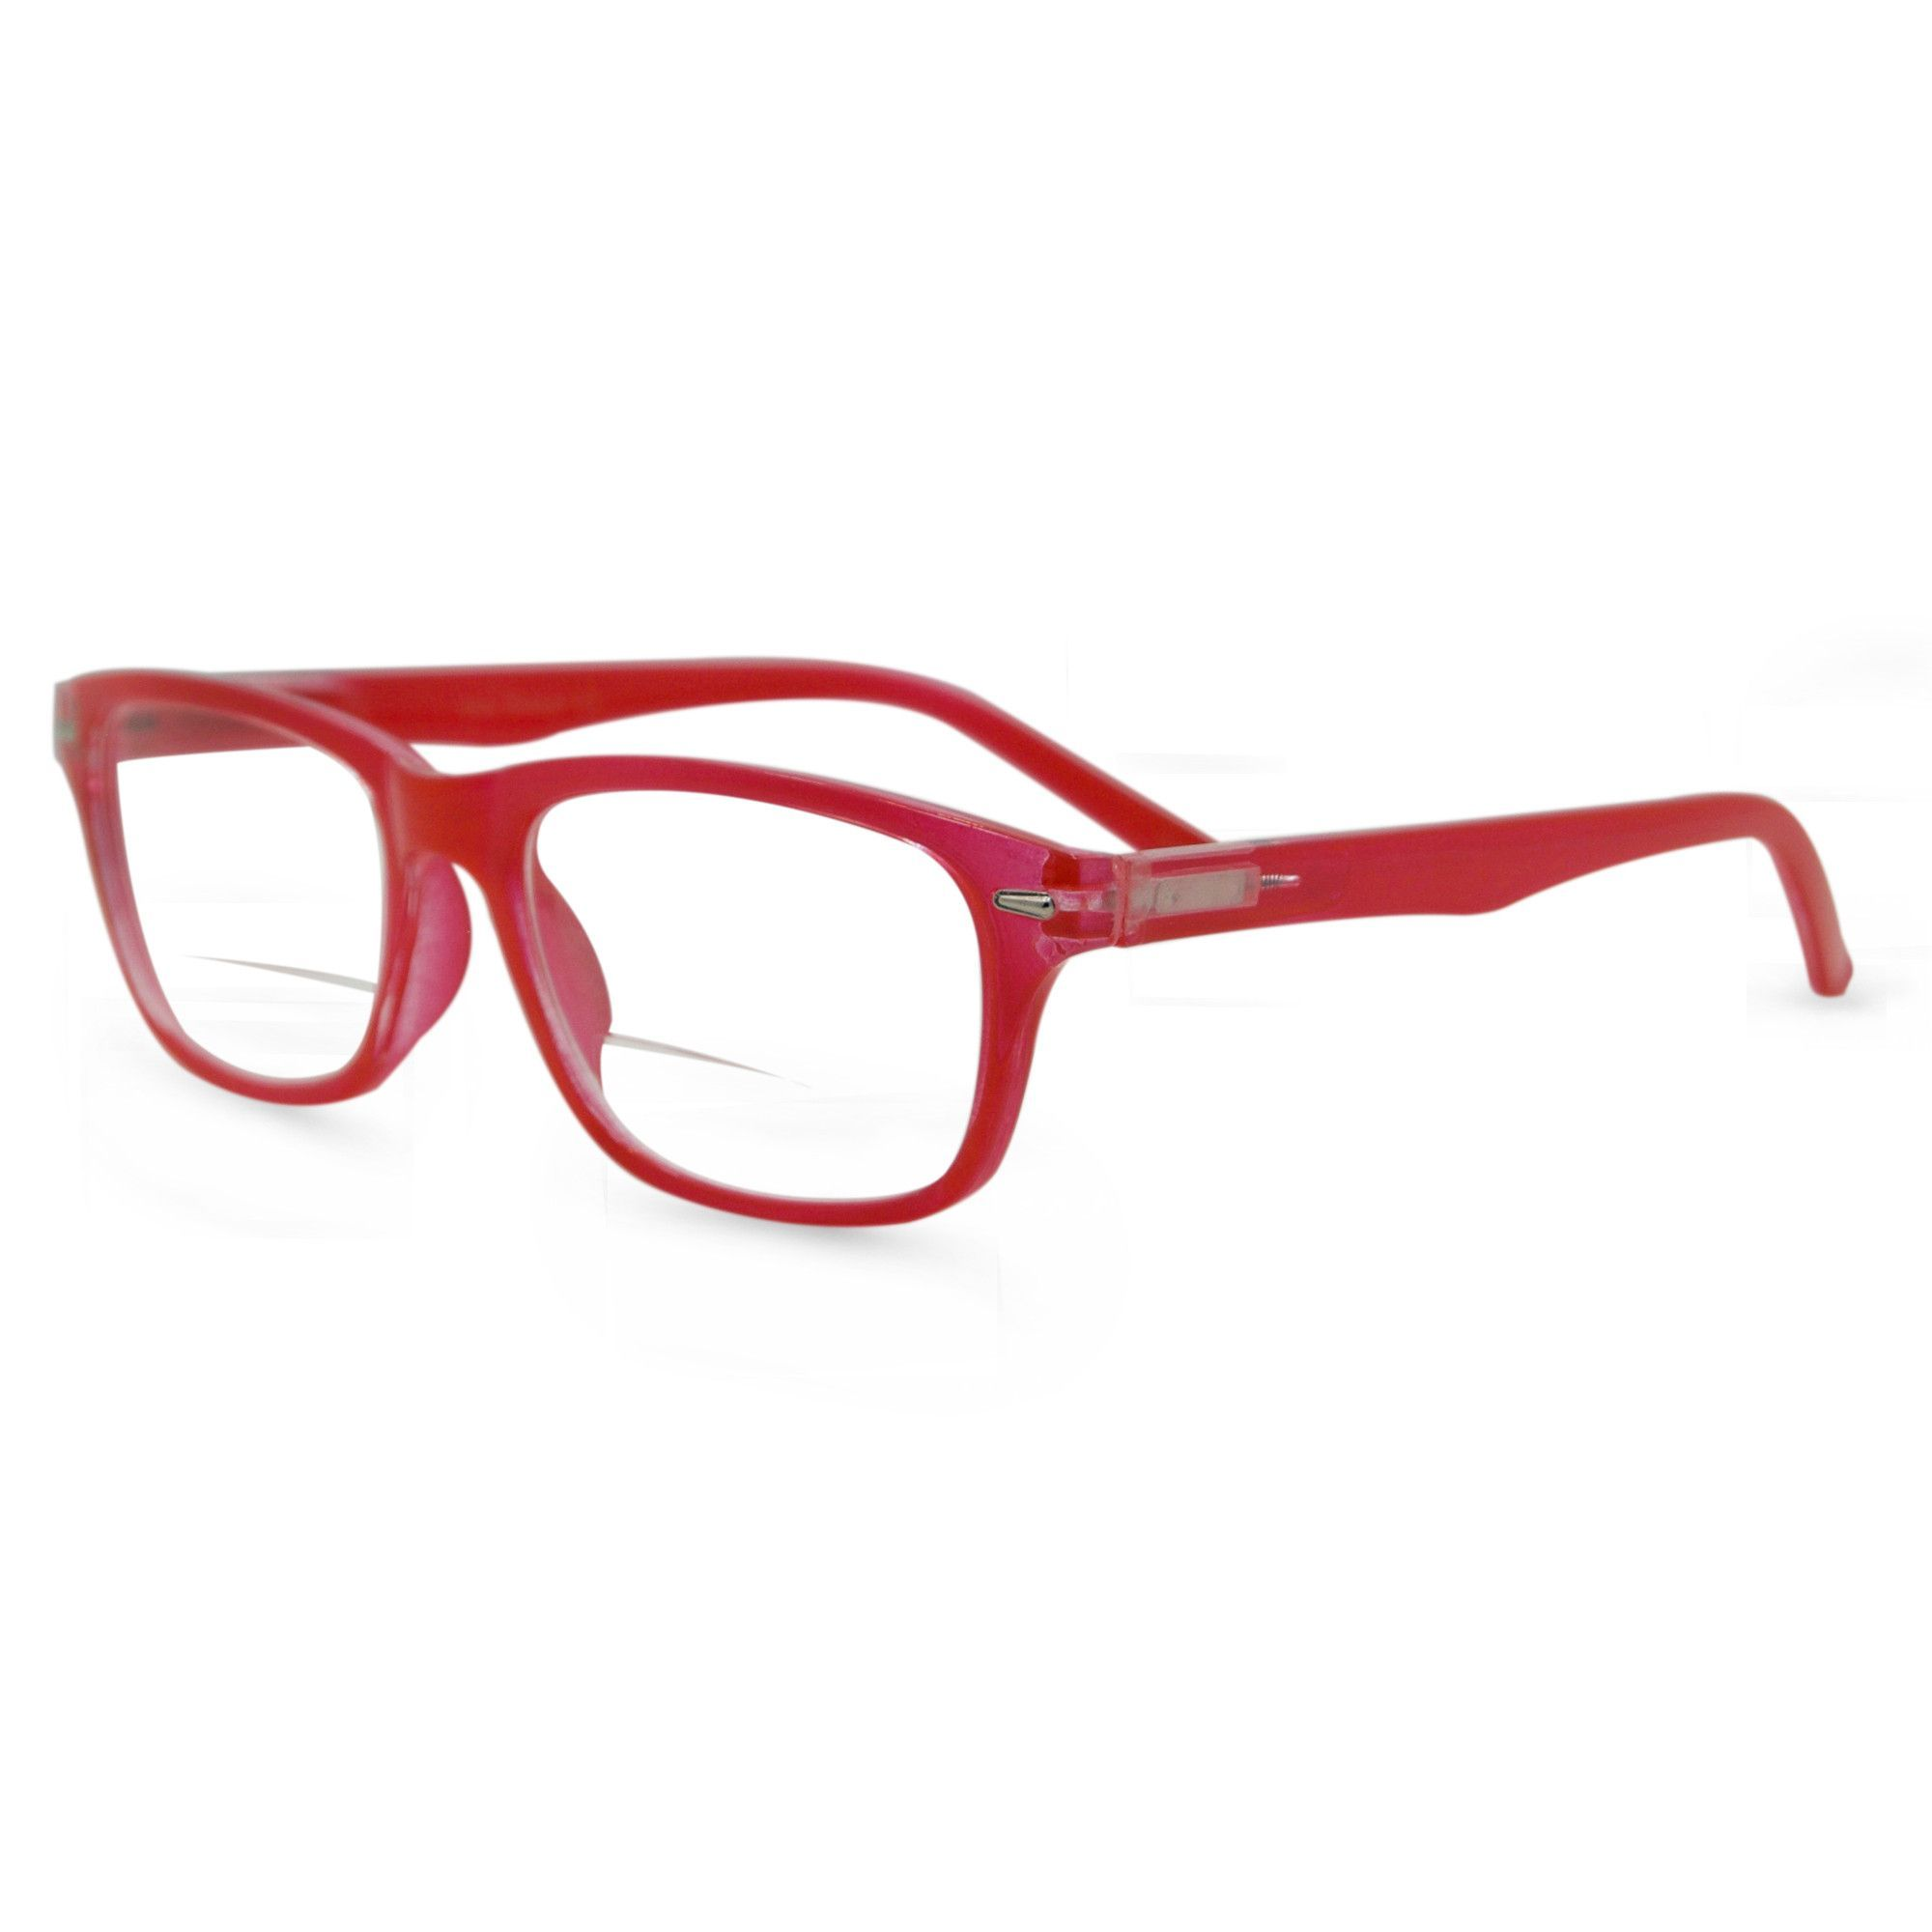 1d0090066c4 Sharp Looking Seymore Wayfarer BiFocal Reading Glasses give You an Upscale  Look. These BiFocal Reading Glasses have that In Demand Wayfarer Design.